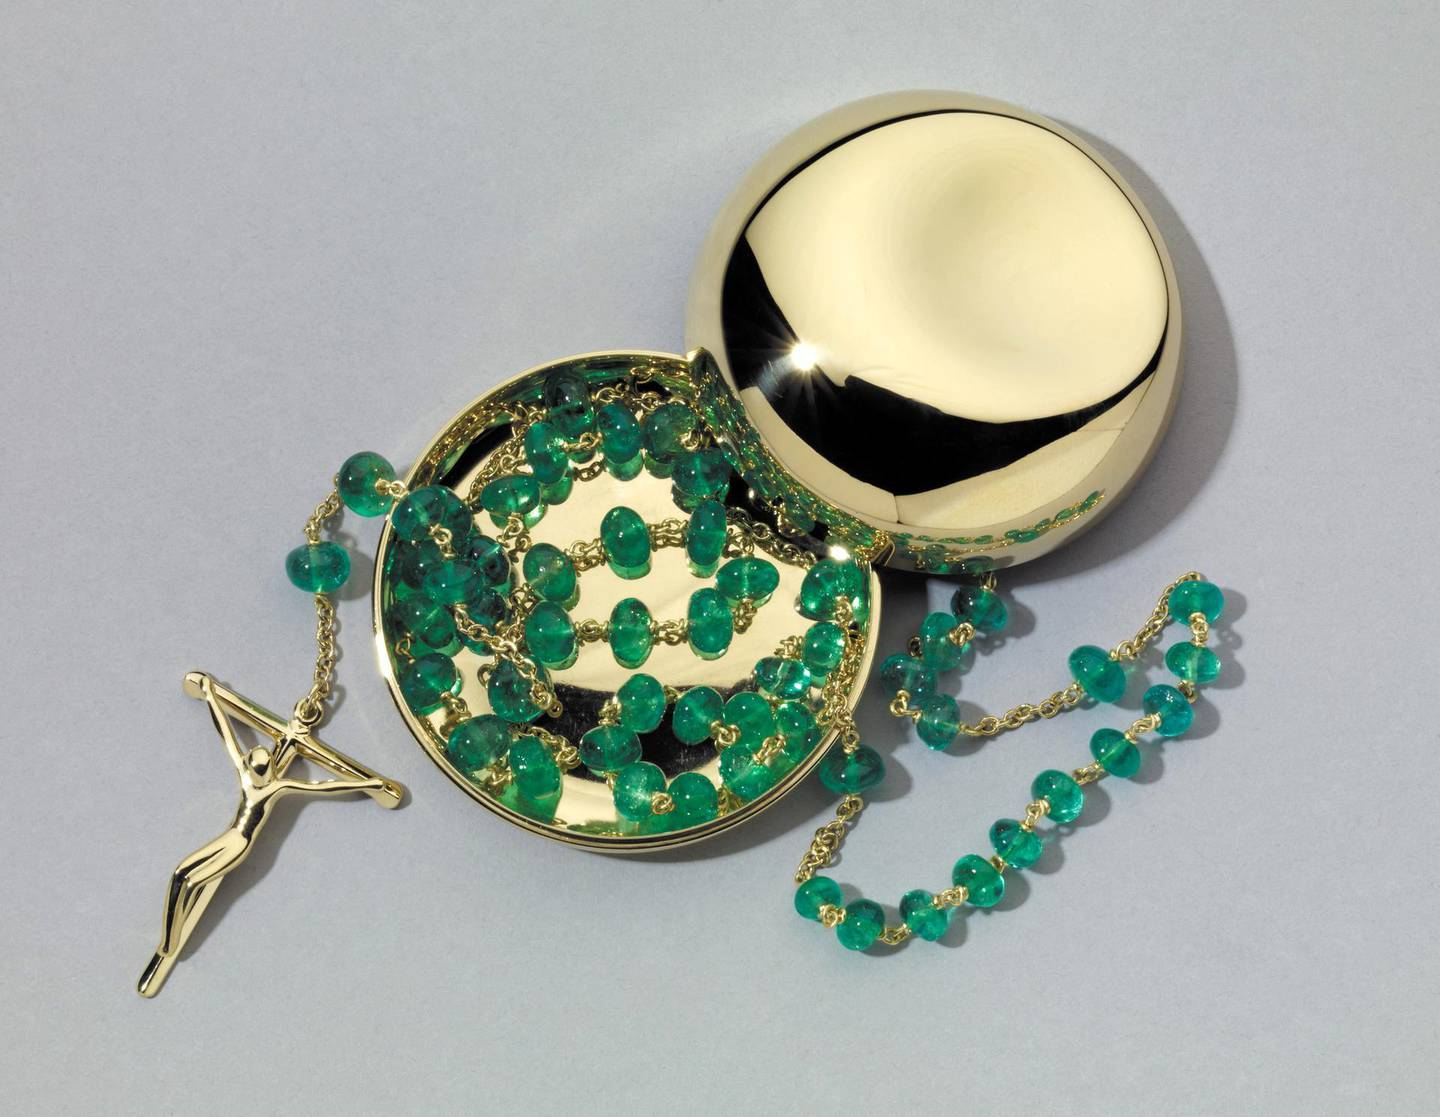 Christian rosary, Designed by Elsa Peretti for Tif fany & Co., Barcelona, Spain, 21st century The 52 Indian emeralds are arranged in groups of 10 for the repeated words of the Hail Mary separated by single gems for the Lord's Prayer. © the Trustees of the British Museum